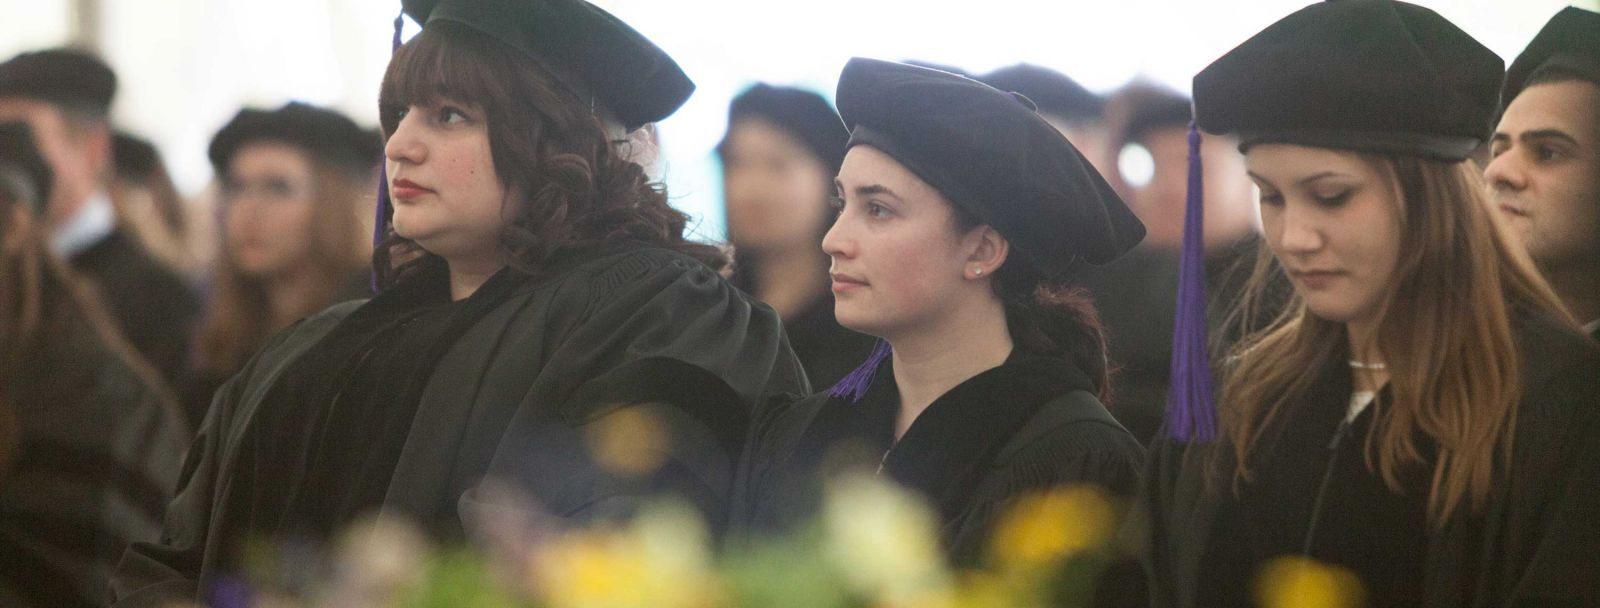 UNH Law graduates at their Commencement